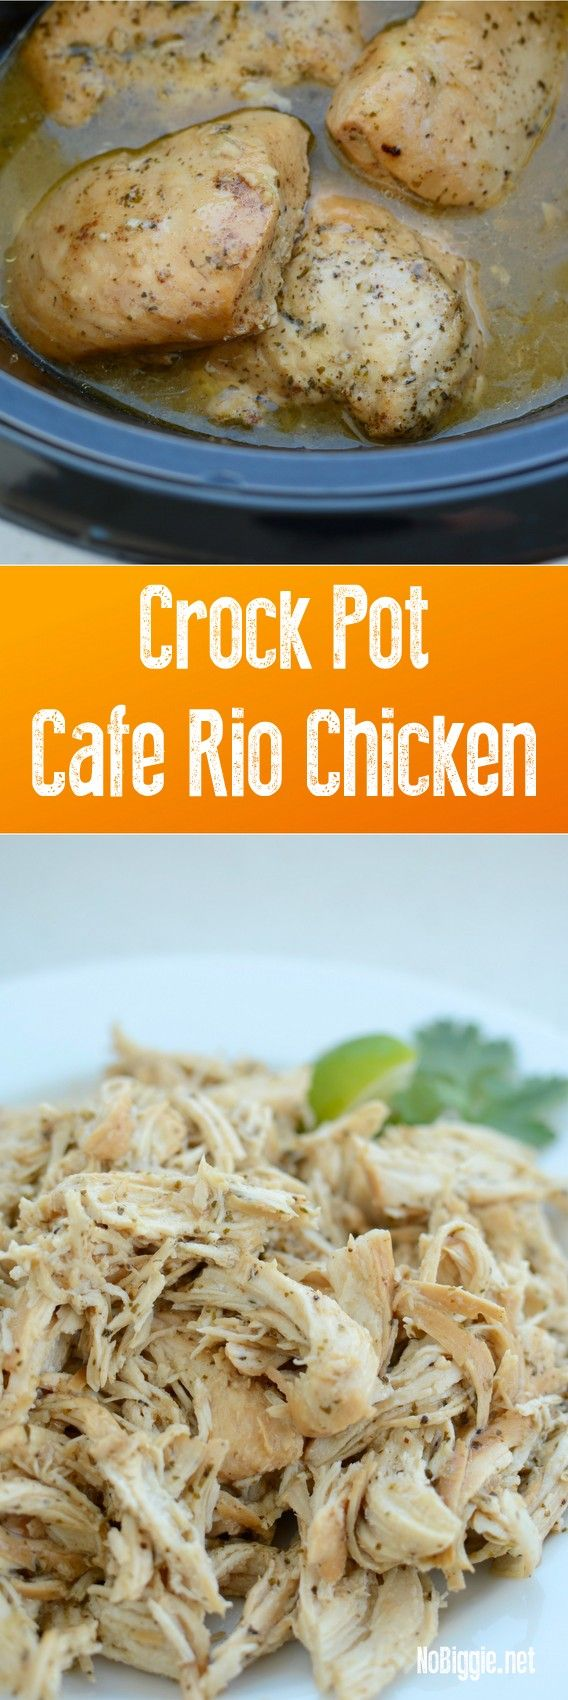 Crock Pot Cafe Rio Chicken | NoBiggie.net